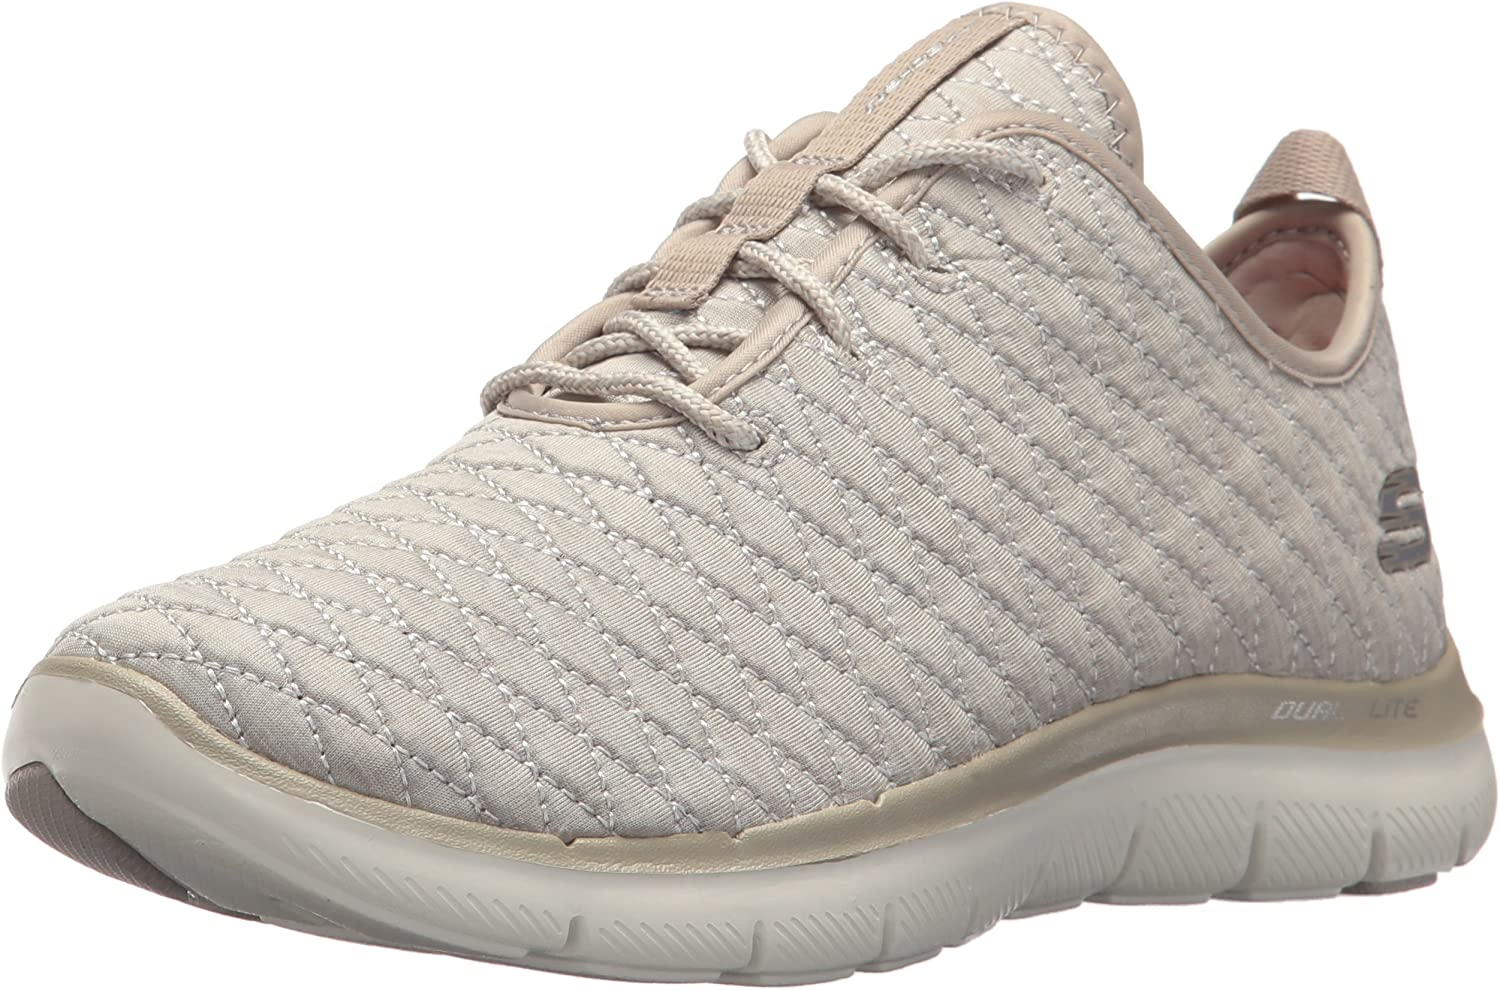 Skechers Womens Flex Appeal 2.0 First Impression Sneaker